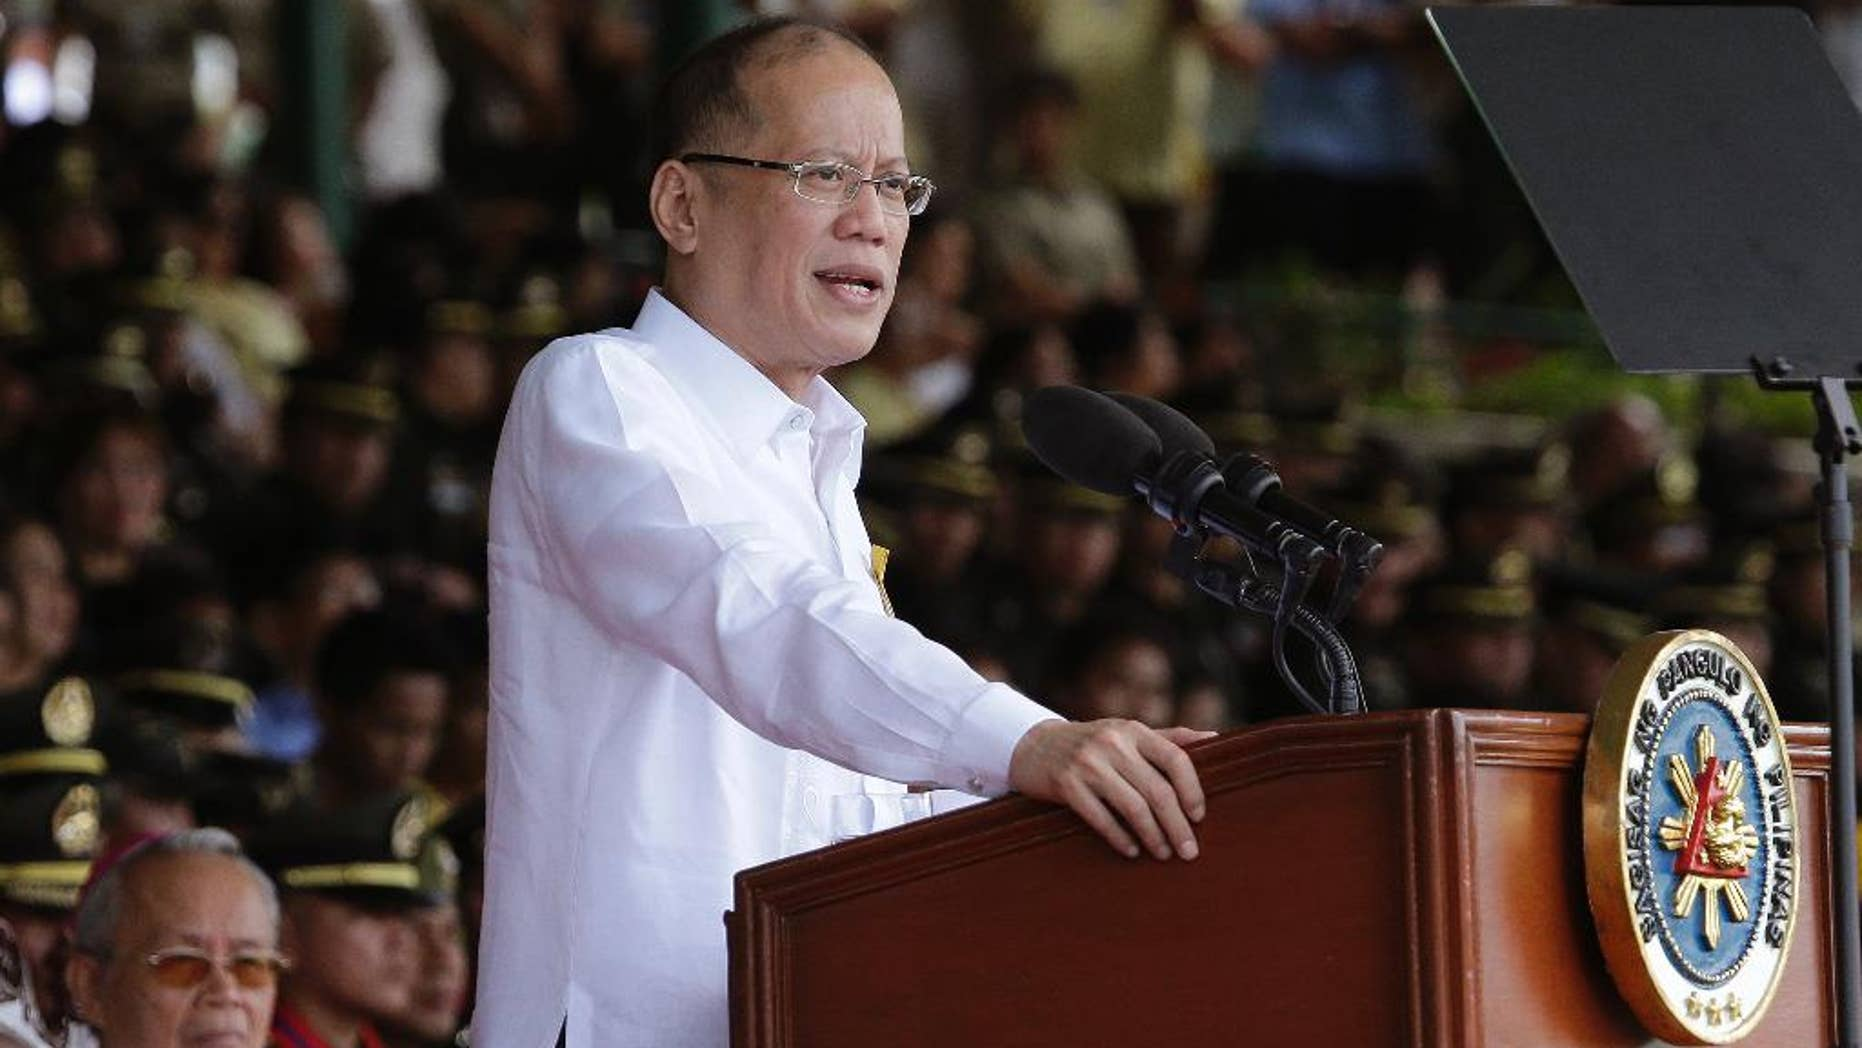 """FILE - In this file photo from March 22, 2016, Philippine President Benigno Aquino III delivers a speech south of Manila, Philippines, on Tuesday, March 22, 2016. Aquino has called this week's election a referendum on his """"straight path"""" style of reformist governance, but his candidate Sen. Ferdinand """"Bongbong"""" Marcos Jr. has lost by millions of votes to a shoot-from-the-lip mayor. (AP Photo/Aaron Favila, File)"""